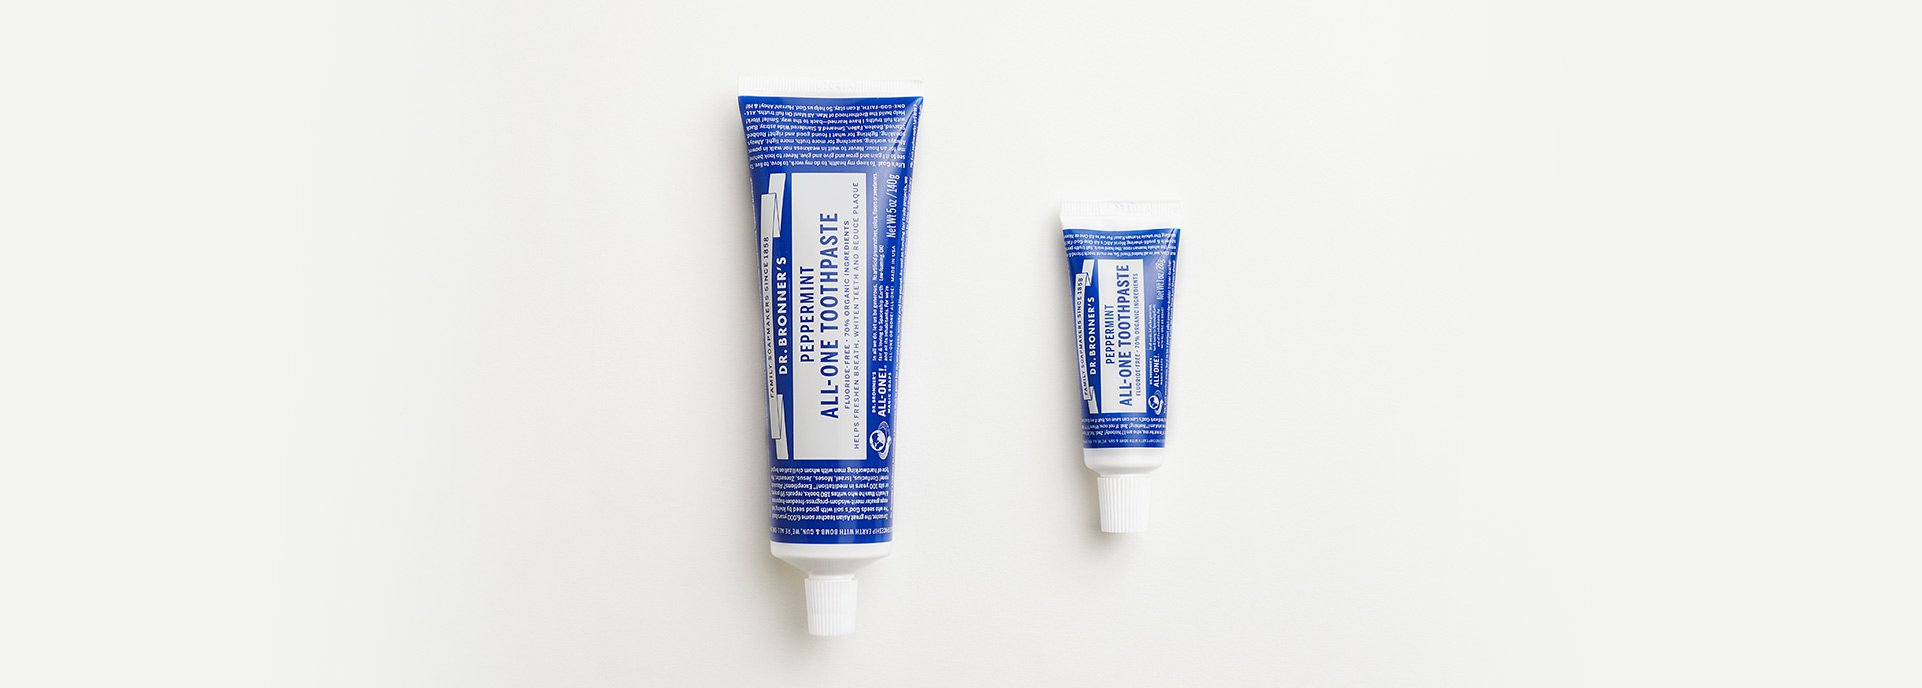 Q&A with Dr. Bronner's